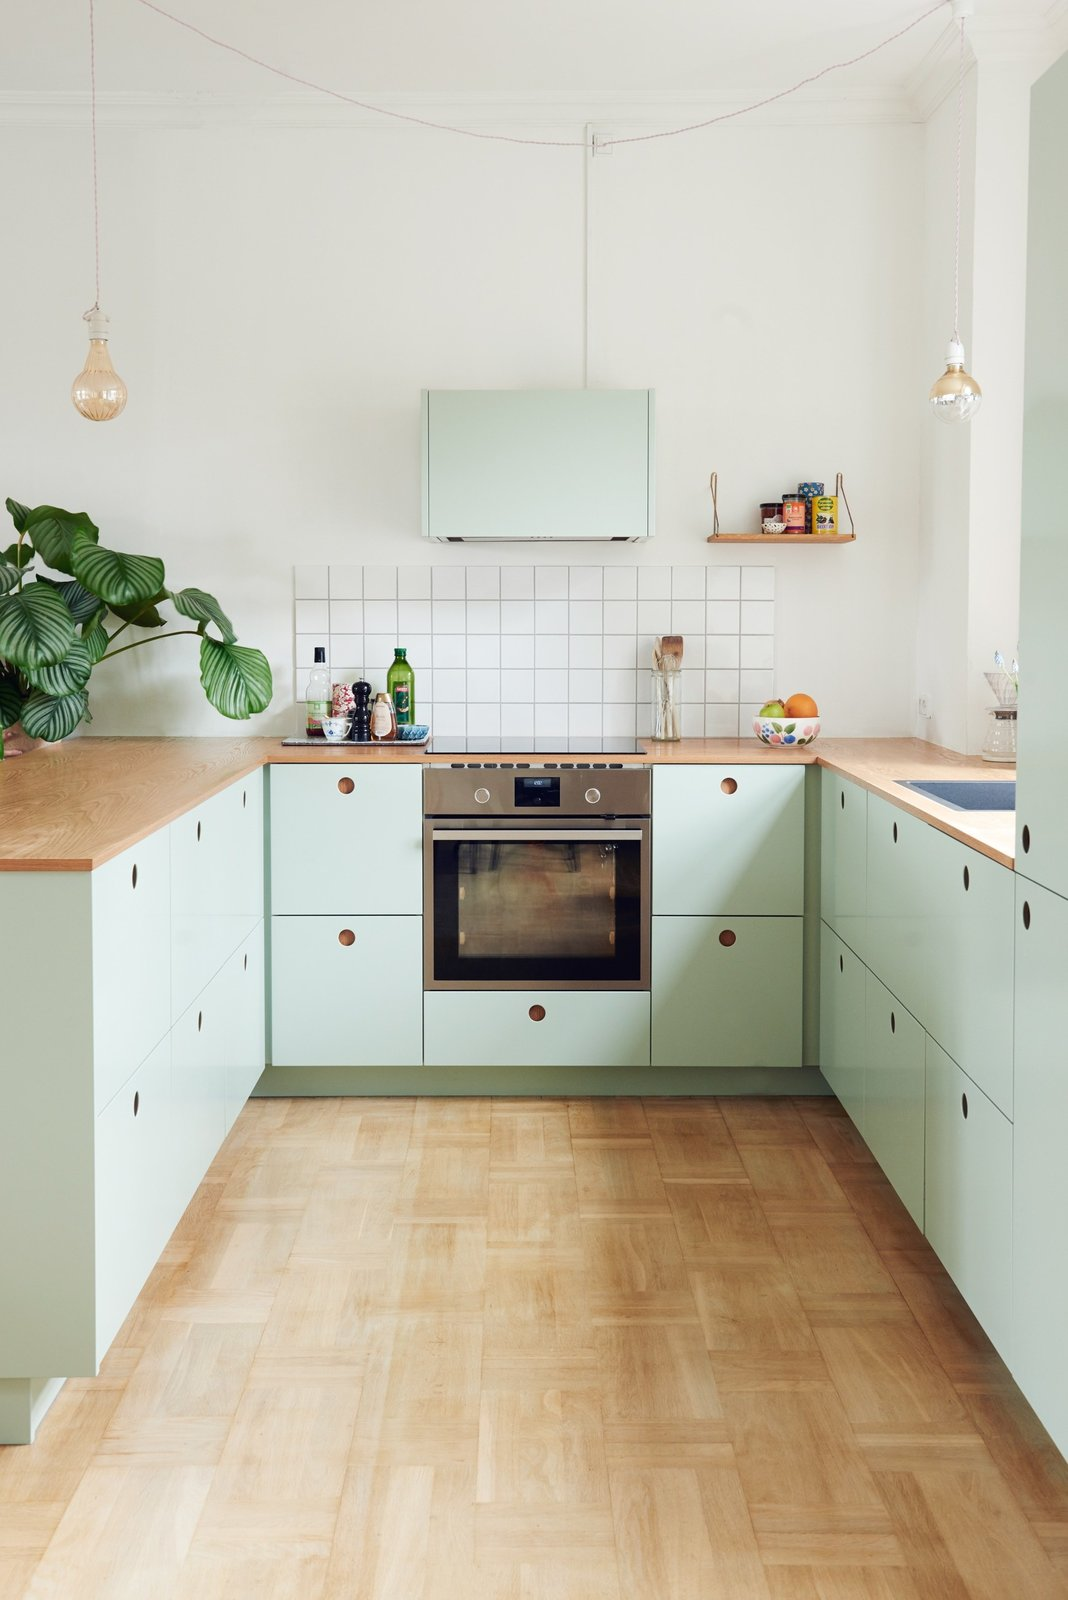 Danish blogger, Tikkie Elsøe, chose mint green Tagged: Kitchen, Wood Counter, Light Hardwood Floor, Pendant Lighting, Subway Tile Backsplashe, Wall Oven, Range Hood, Drop In Sink, Colorful Cabinet, and Cooktops.  Photo 4 of 9 in Modern Kitchen Upgrade Ideas From a Danish Design Firm That's Challenging the Kitchen Market